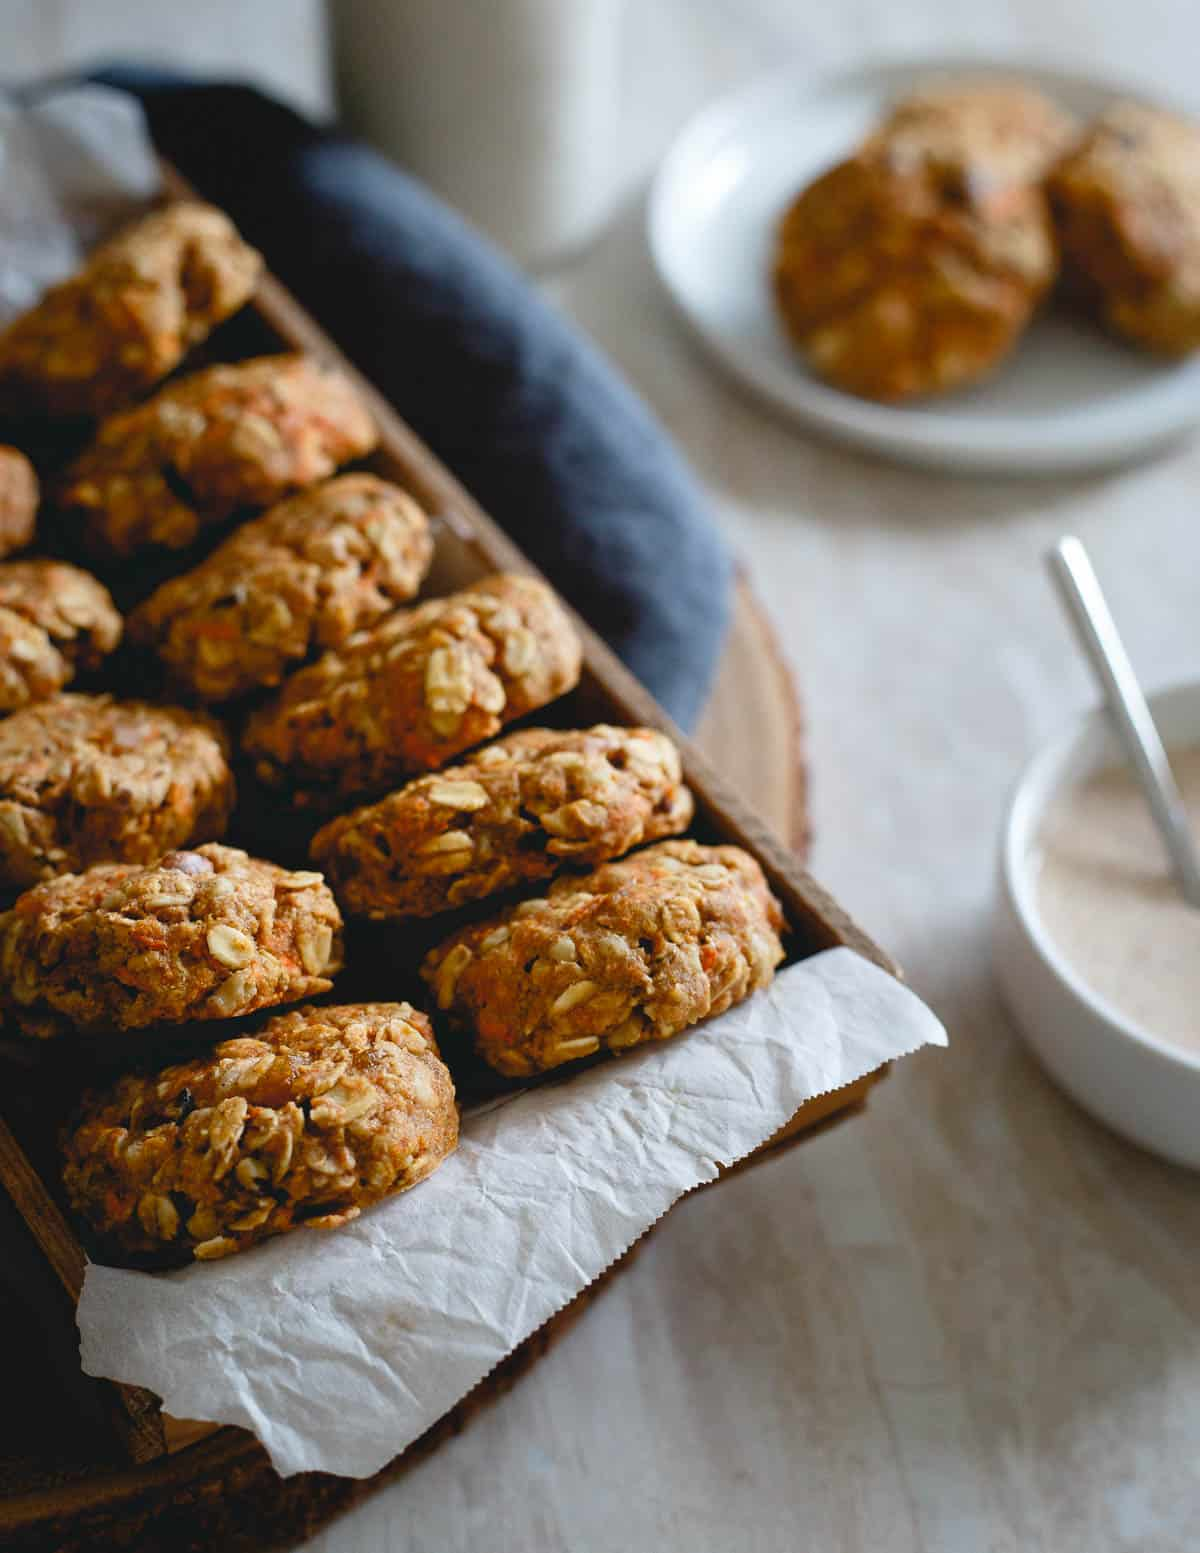 These healthy carrot cake cookies are made with oats, whole wheat flour and all the add-ins you love from carrot cake.